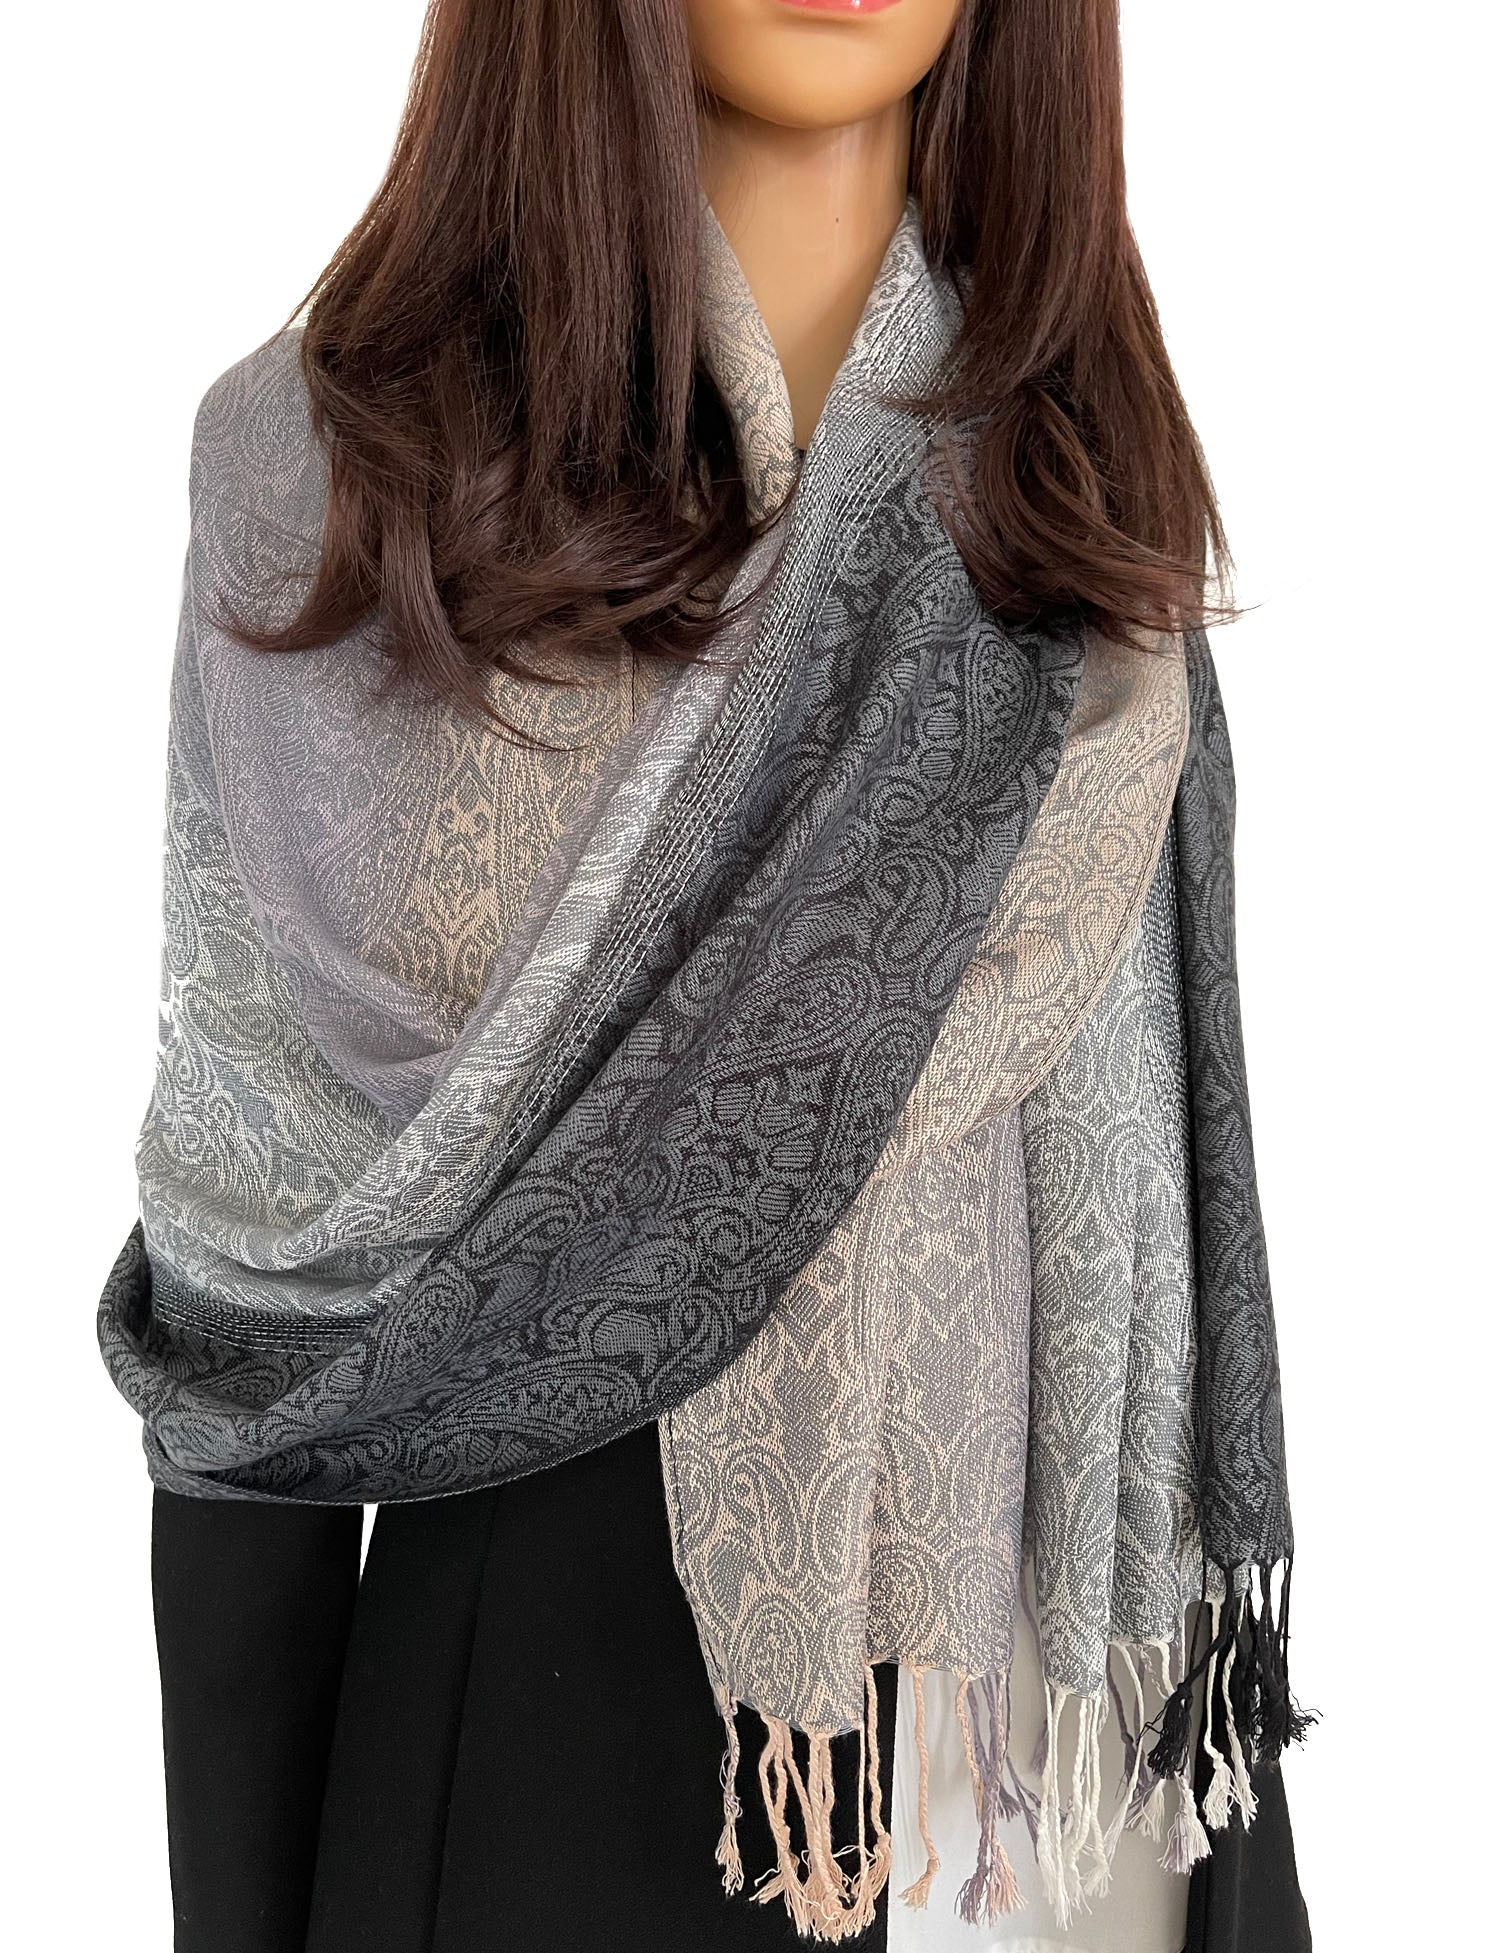 GREY OMBRE PAISLEY PRINT REVERSIBLE PASHMINA SHAWL SCARF